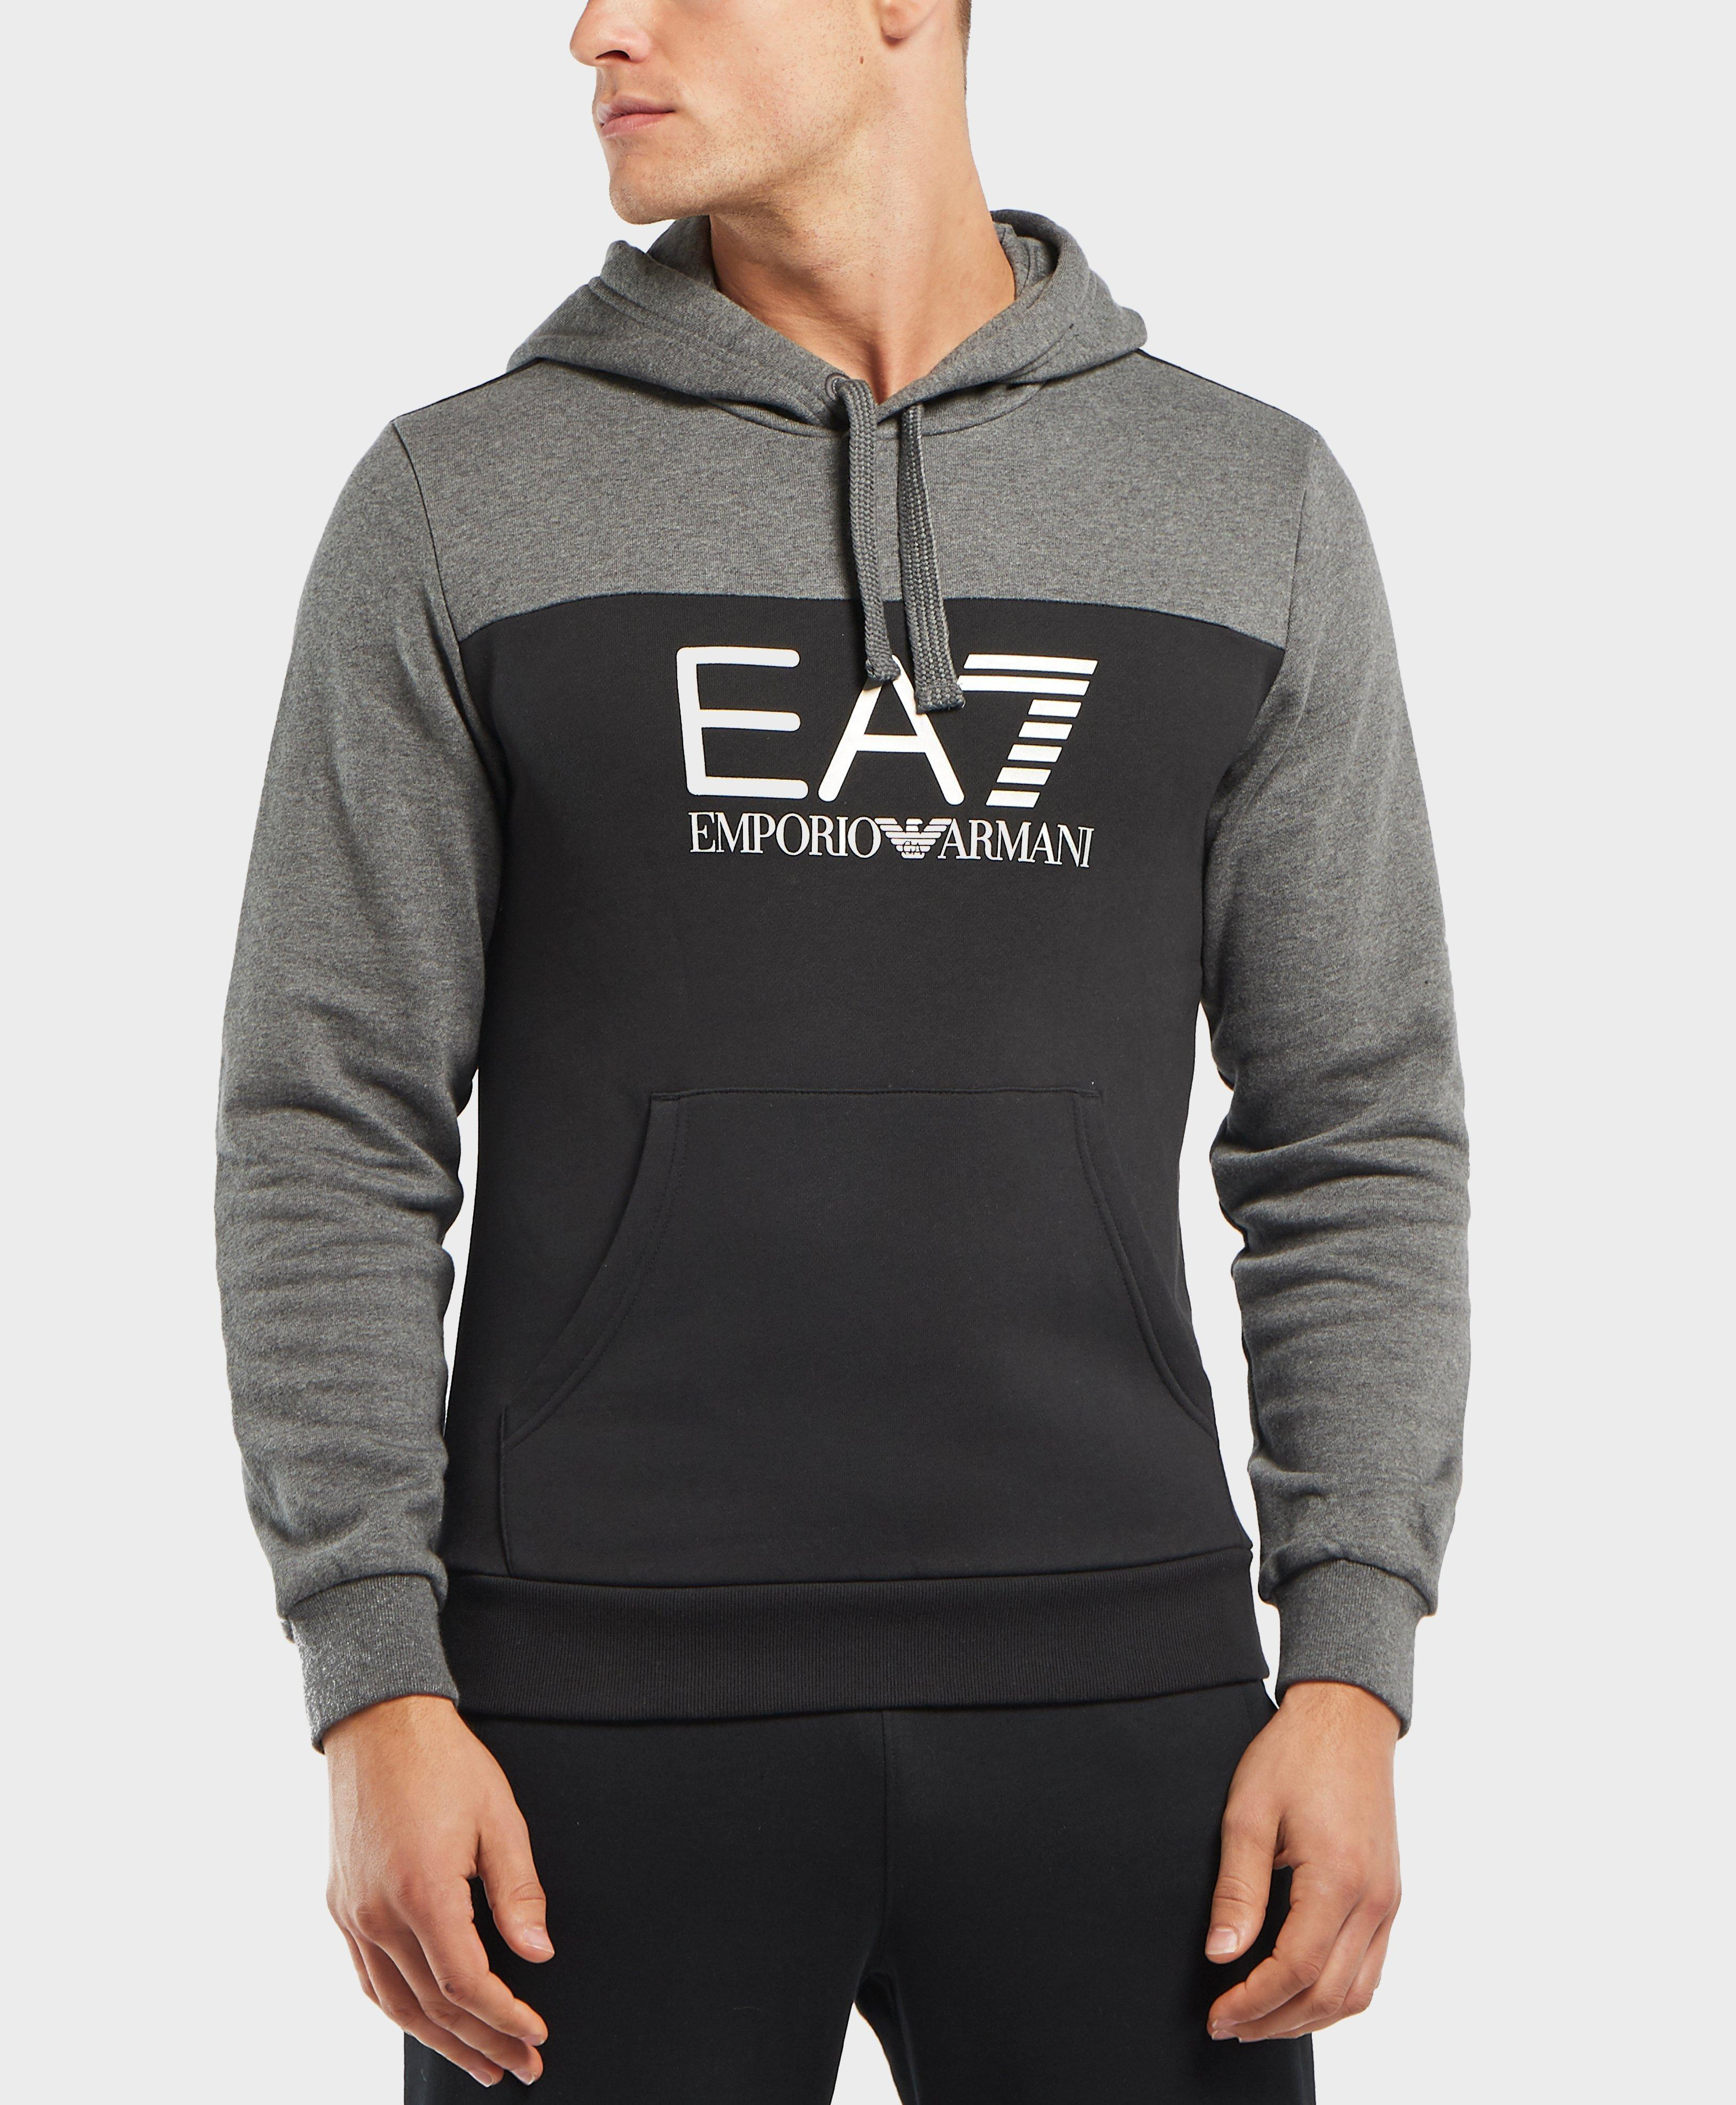 a59f9a09b79 Lyst - Ea7 Tritonal Overhead Hoodie in Gray for Men